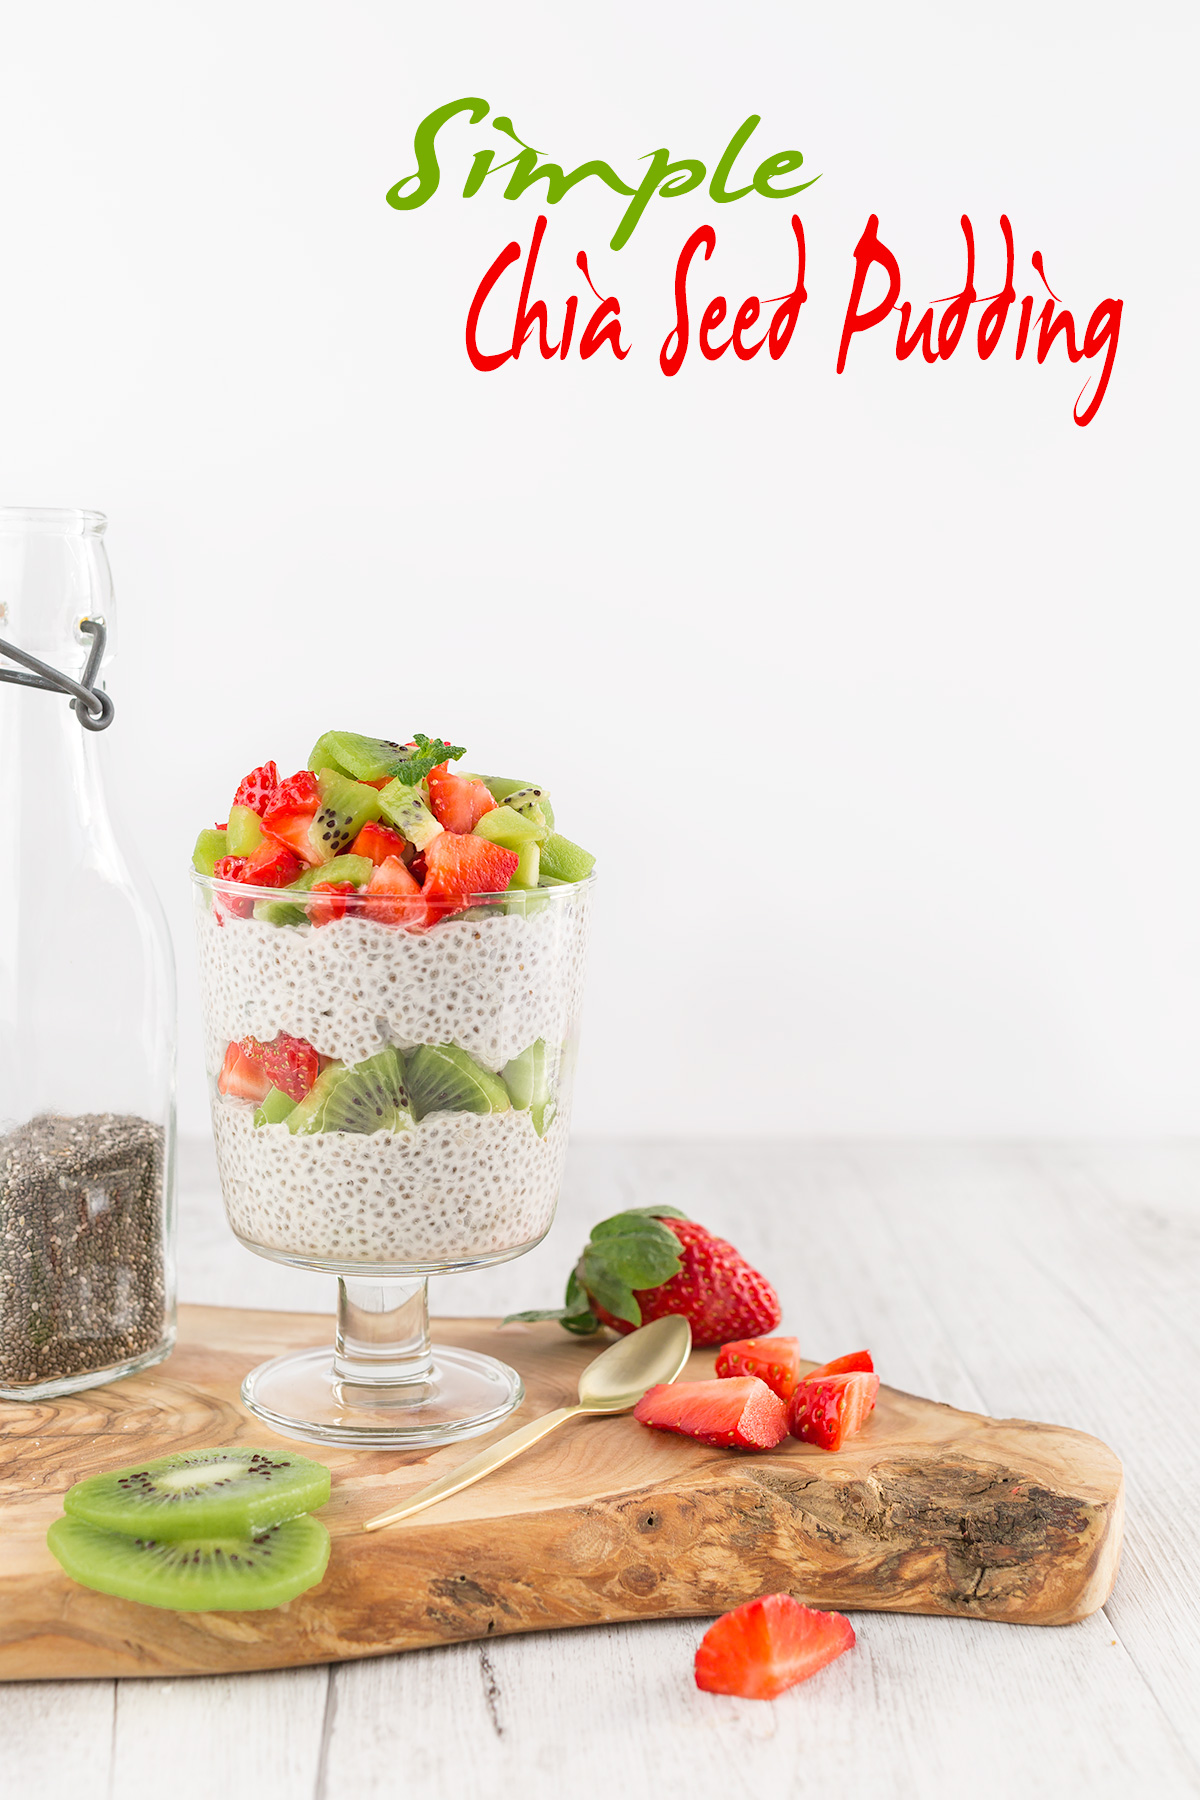 strawberry vanilla vegan simple CHIA SEED PUDDING basic recipe CHIA PUDDING ricetta base BUDINO di SEMI di CHIA vegan senza glutine alle fragole vaniglia